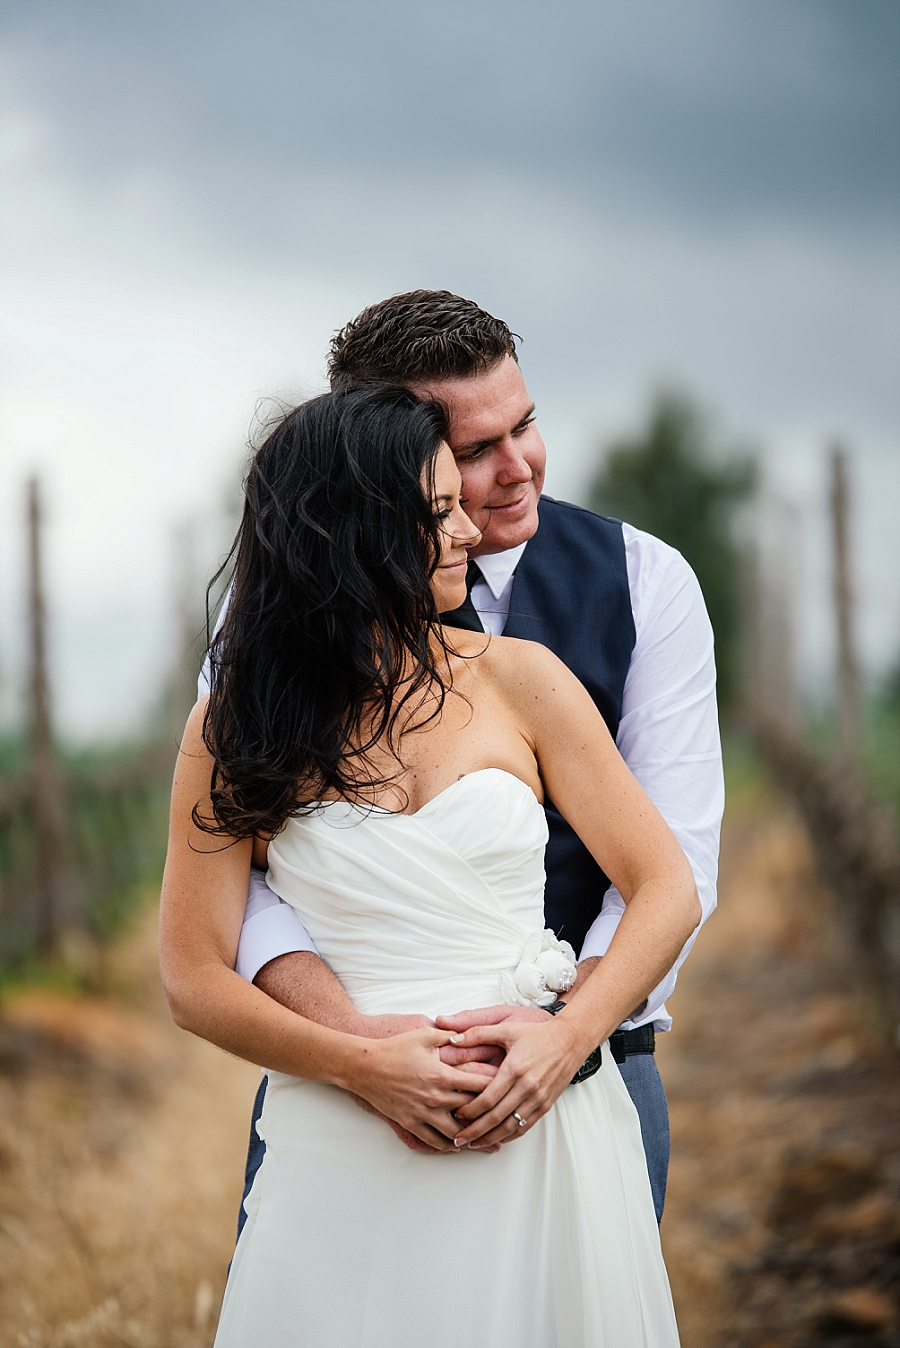 Darren Bester Photography - Wedding Photographer - Cape Town - The Halliday Wedding_0045.jpg